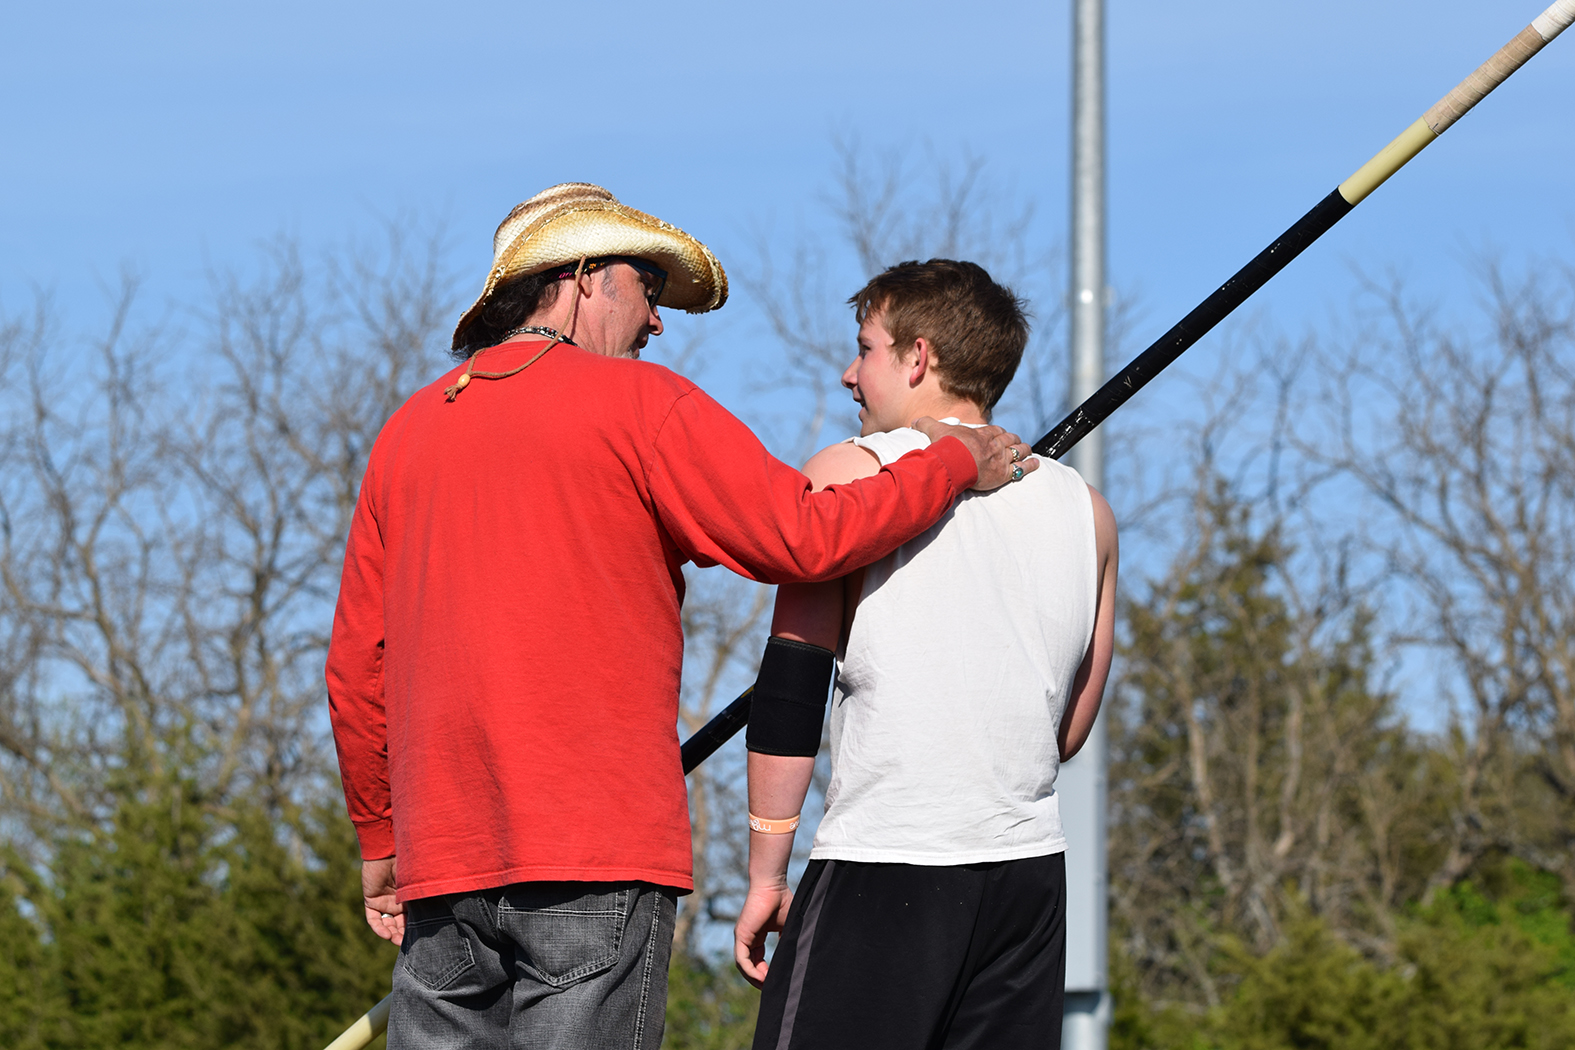 Pole vault coach shares expertise with athletes